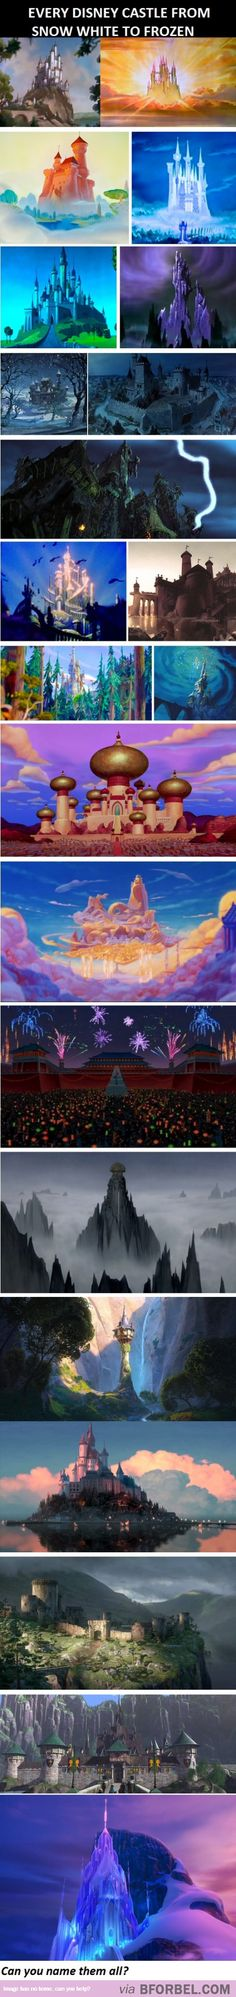 22 Disney Castles Across Time